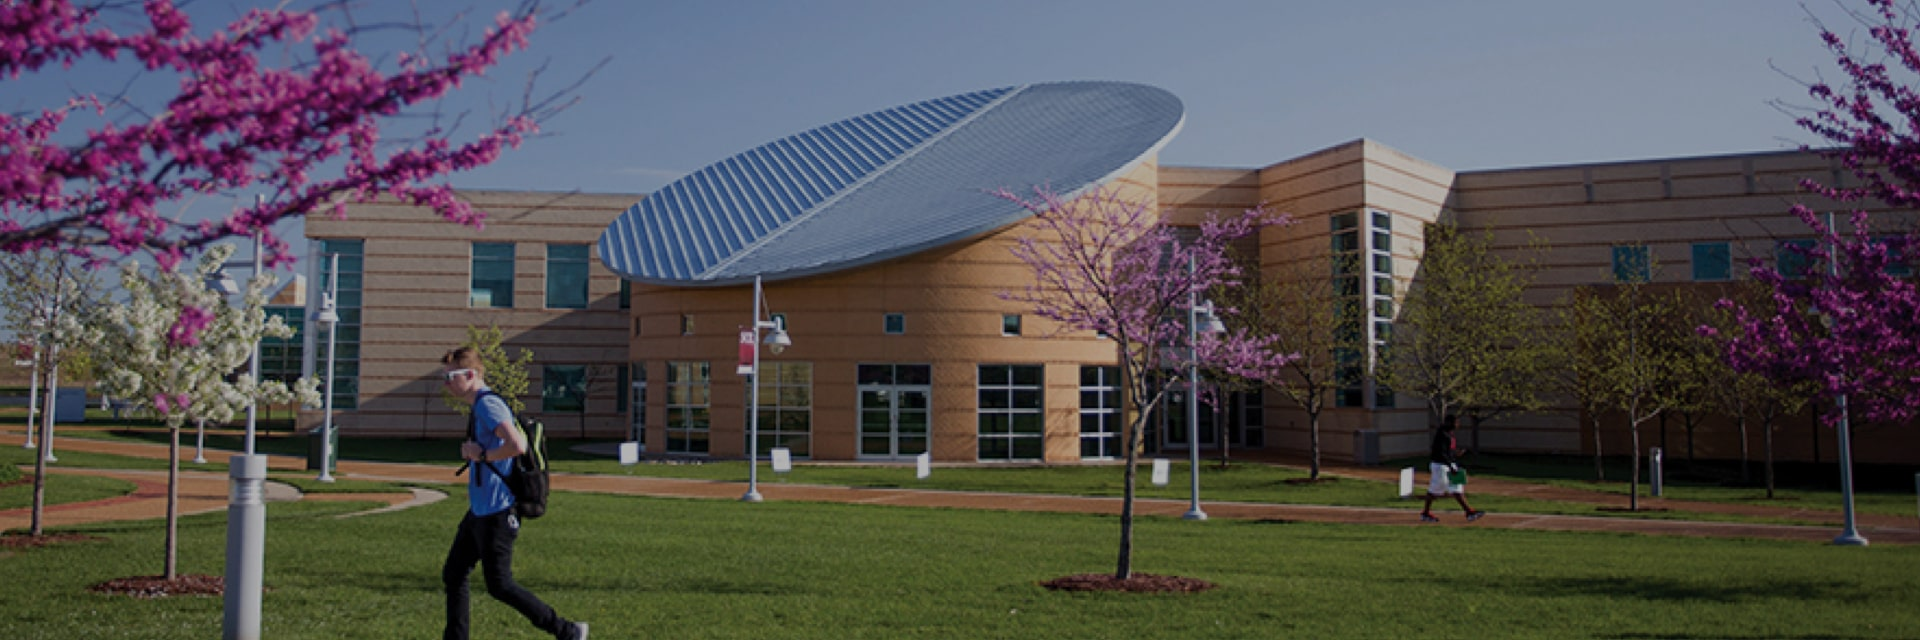 St. Charles Community College